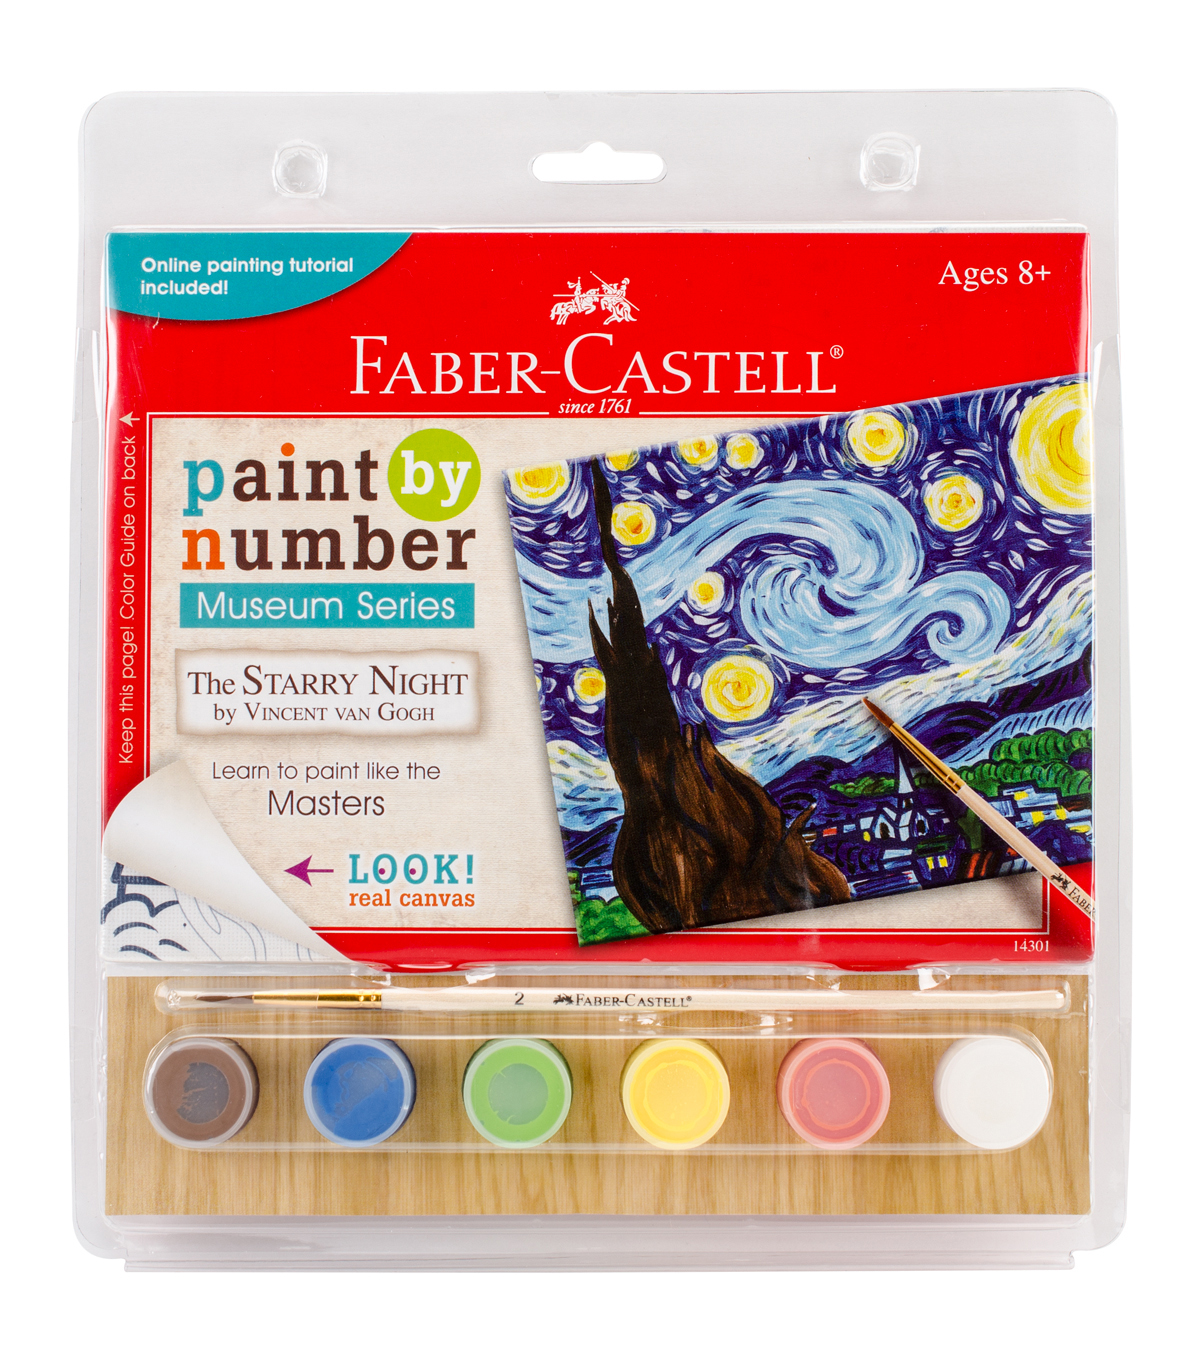 Faber-Castell Museum Series Paint By Number Kit-The Starry Night